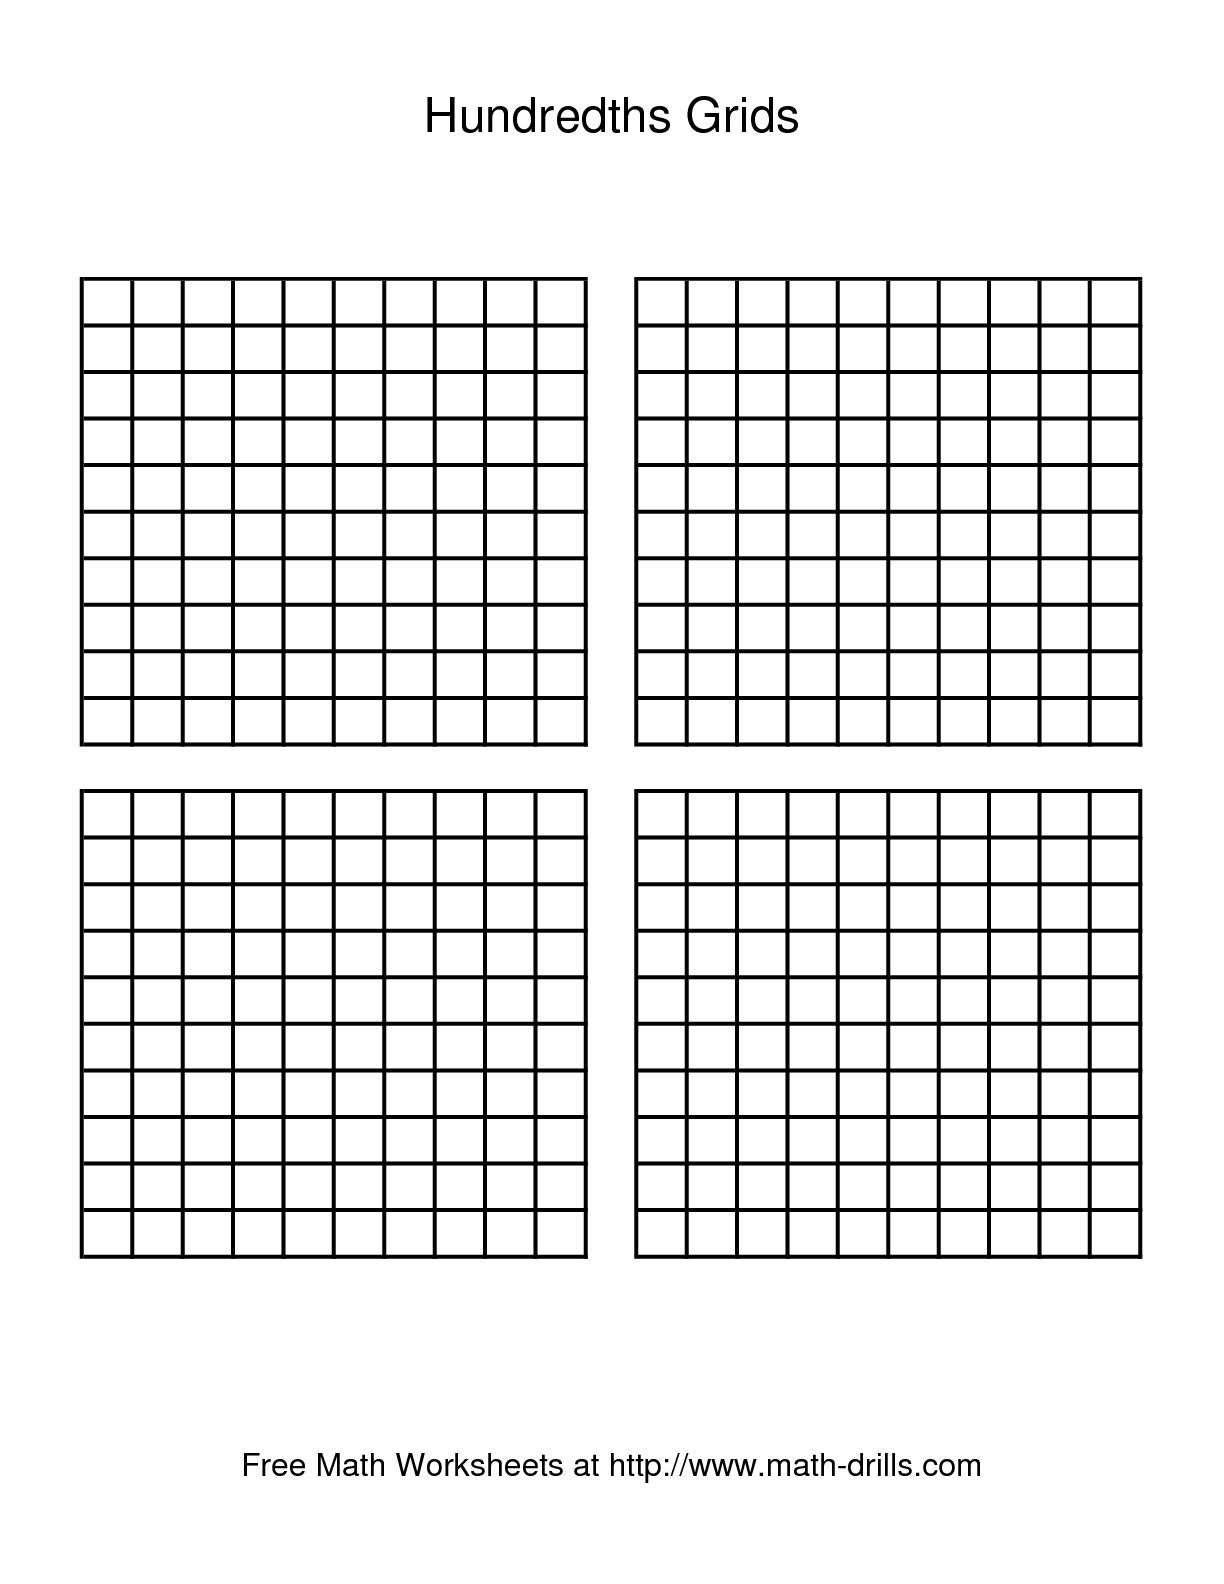 Adorable image inside hundredths grid printable